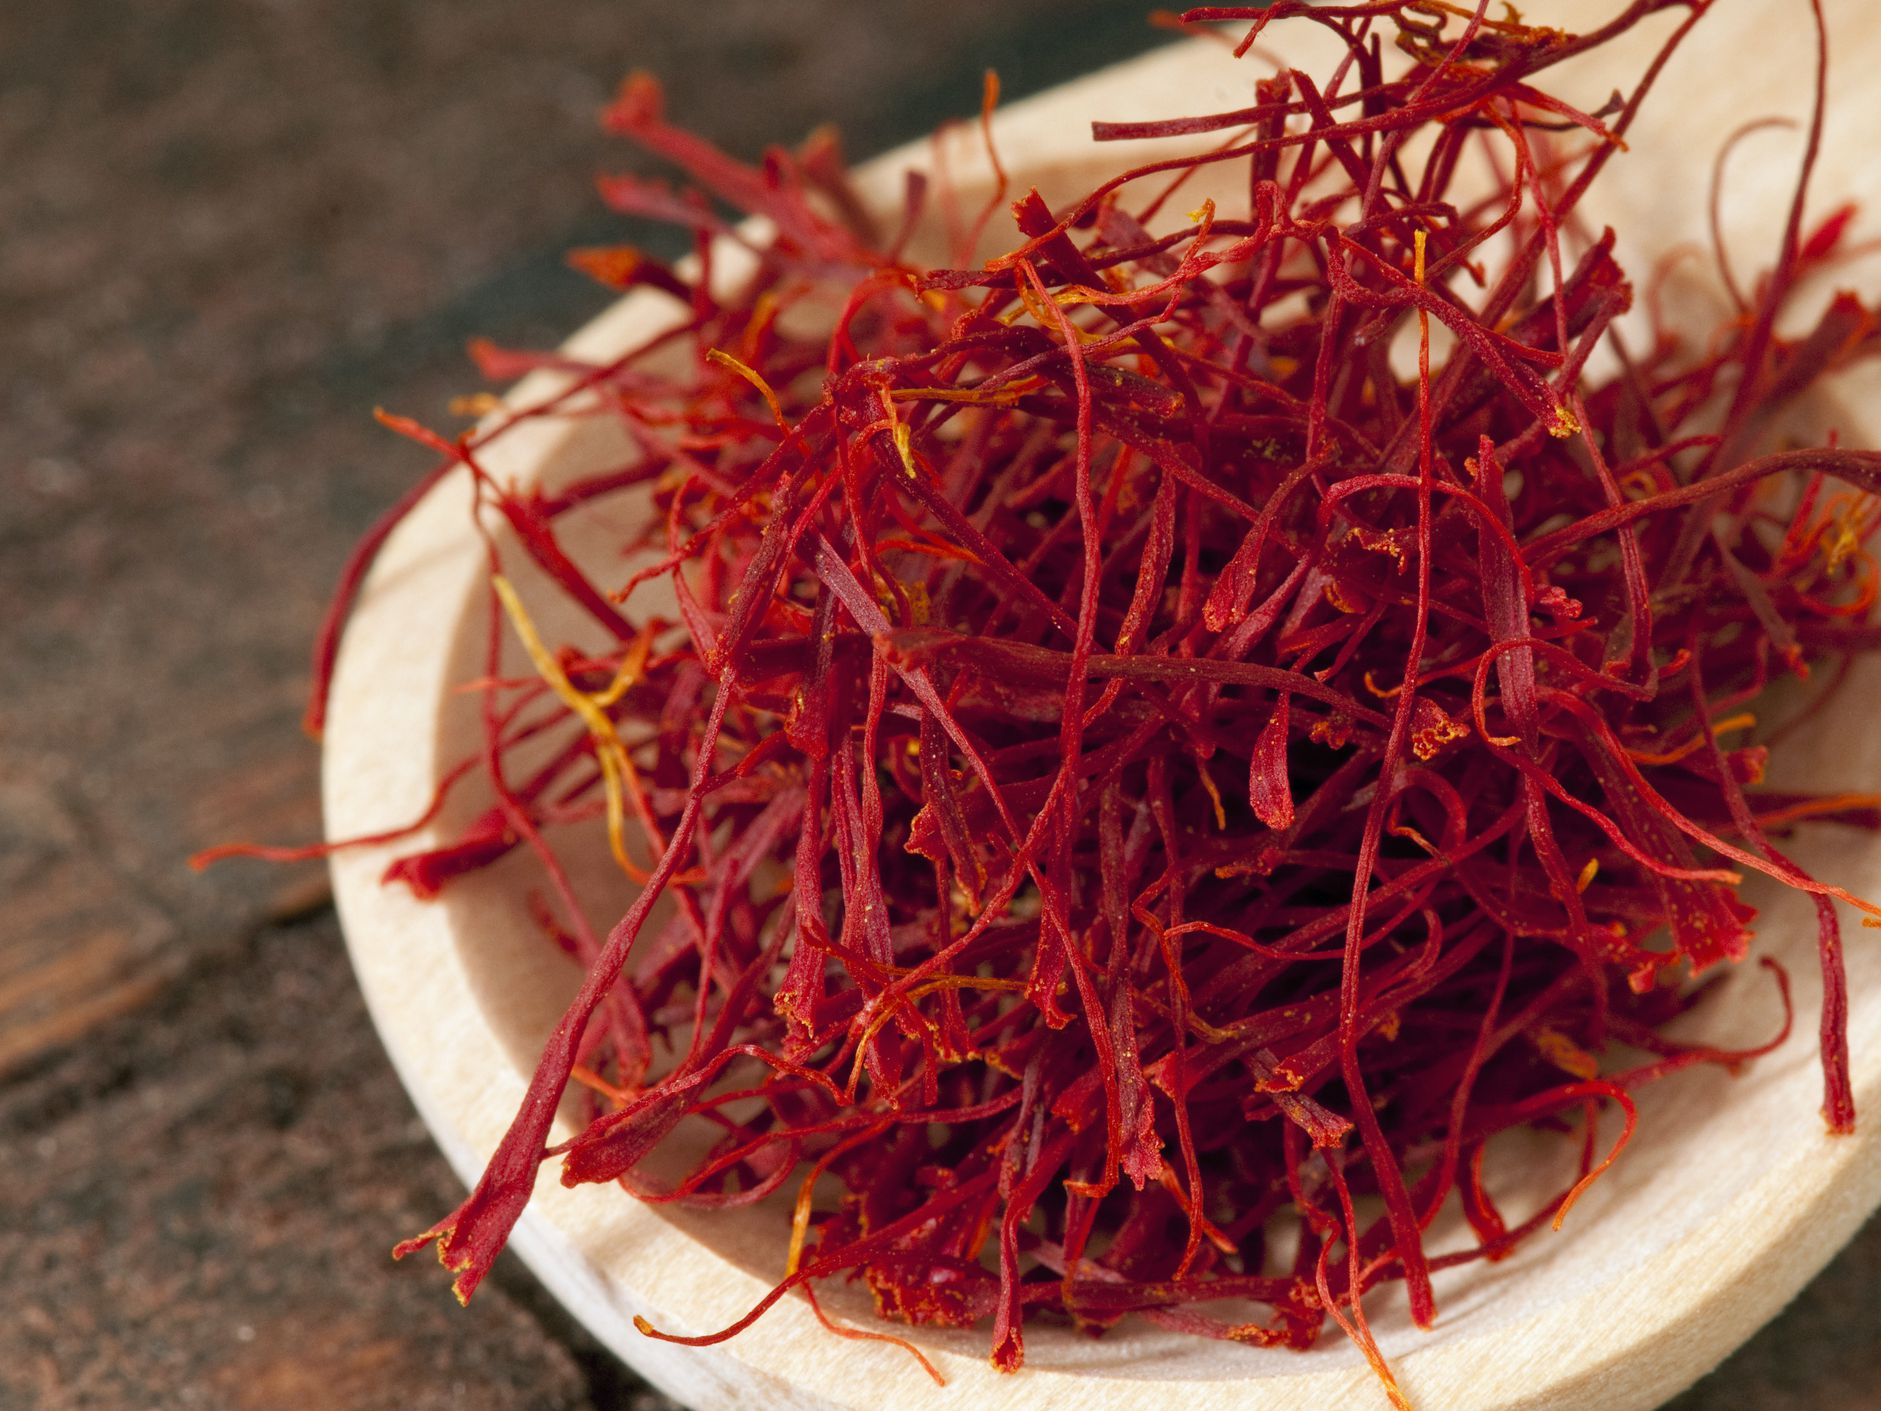 major-purchase-of-mashhad-saffron